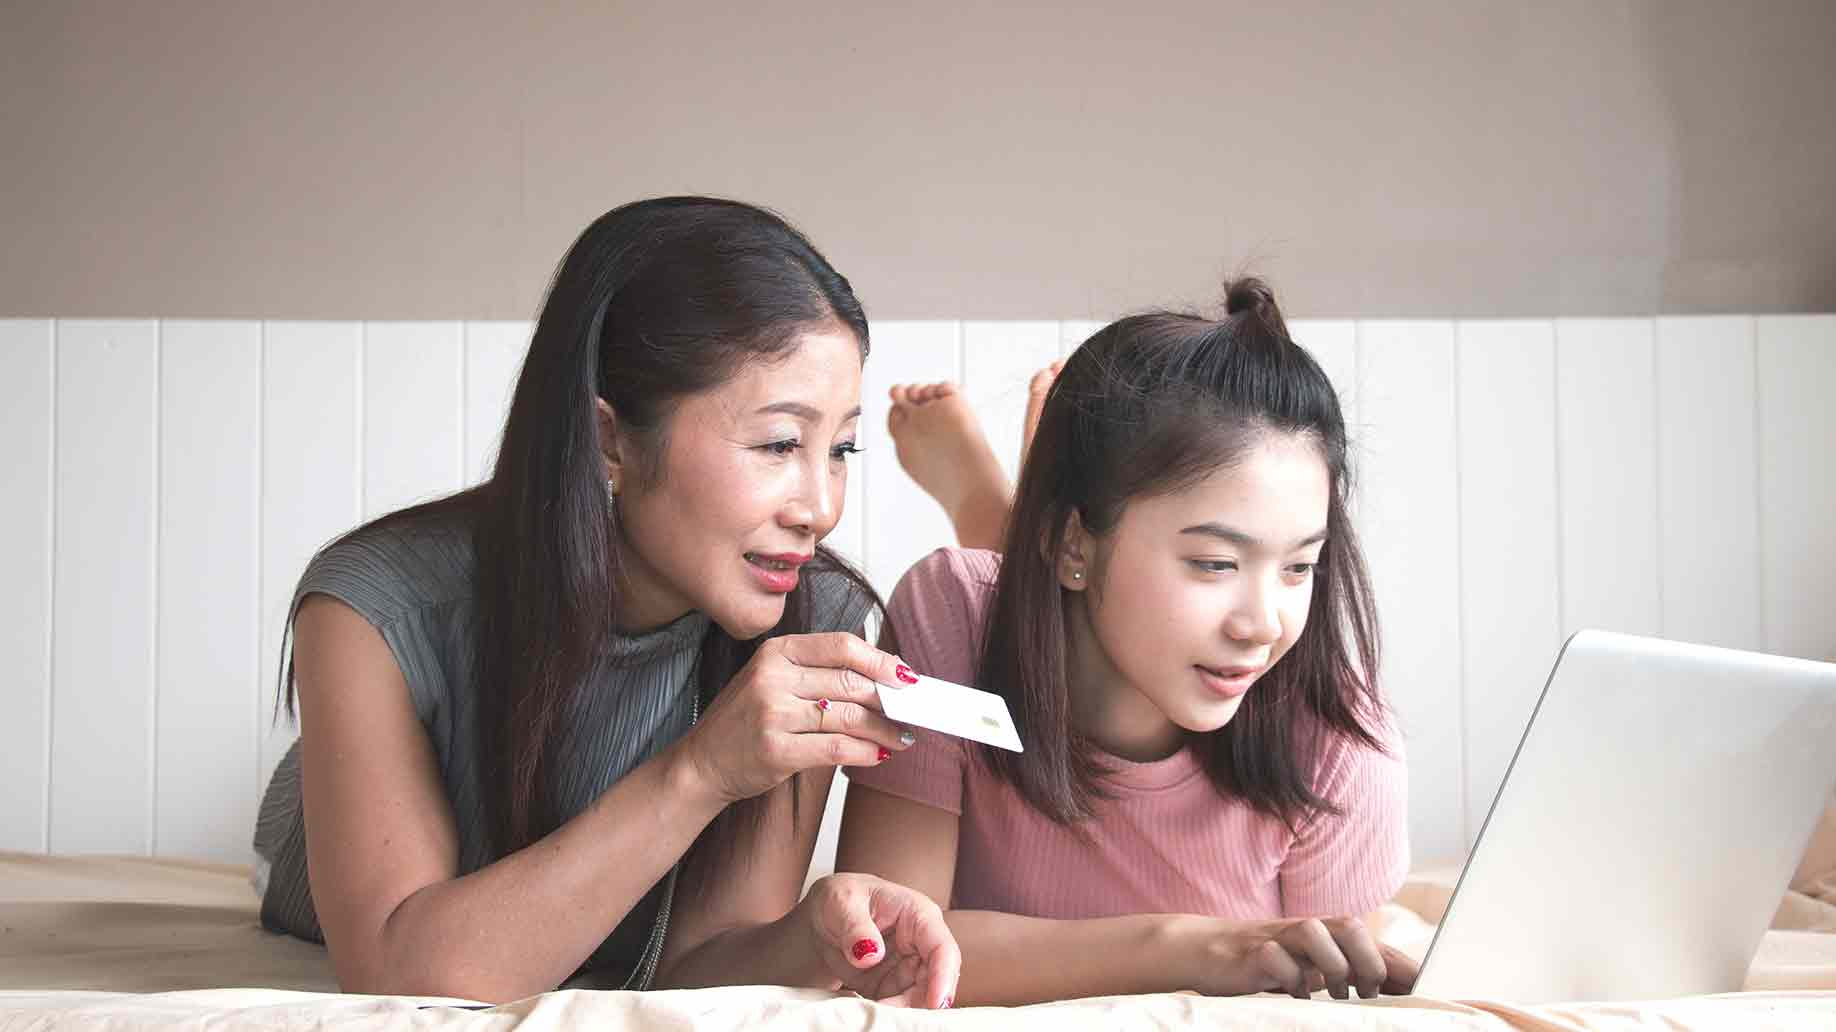 mother and daughter bonding buying online using computer